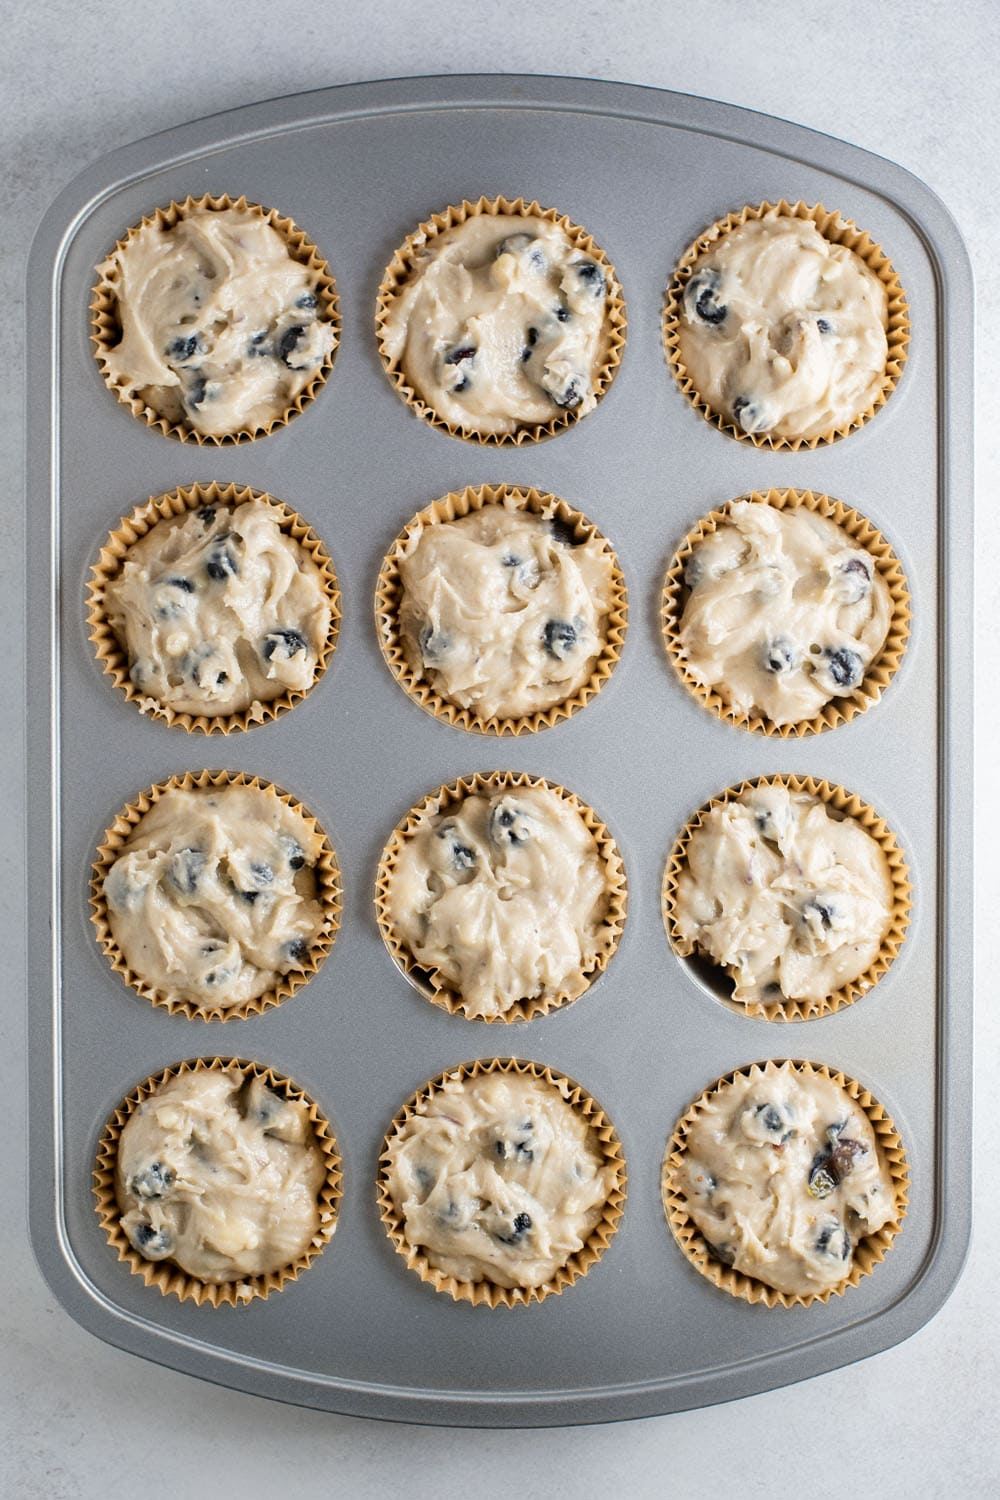 Blueberry muffin batter in cups in a muffin tin.